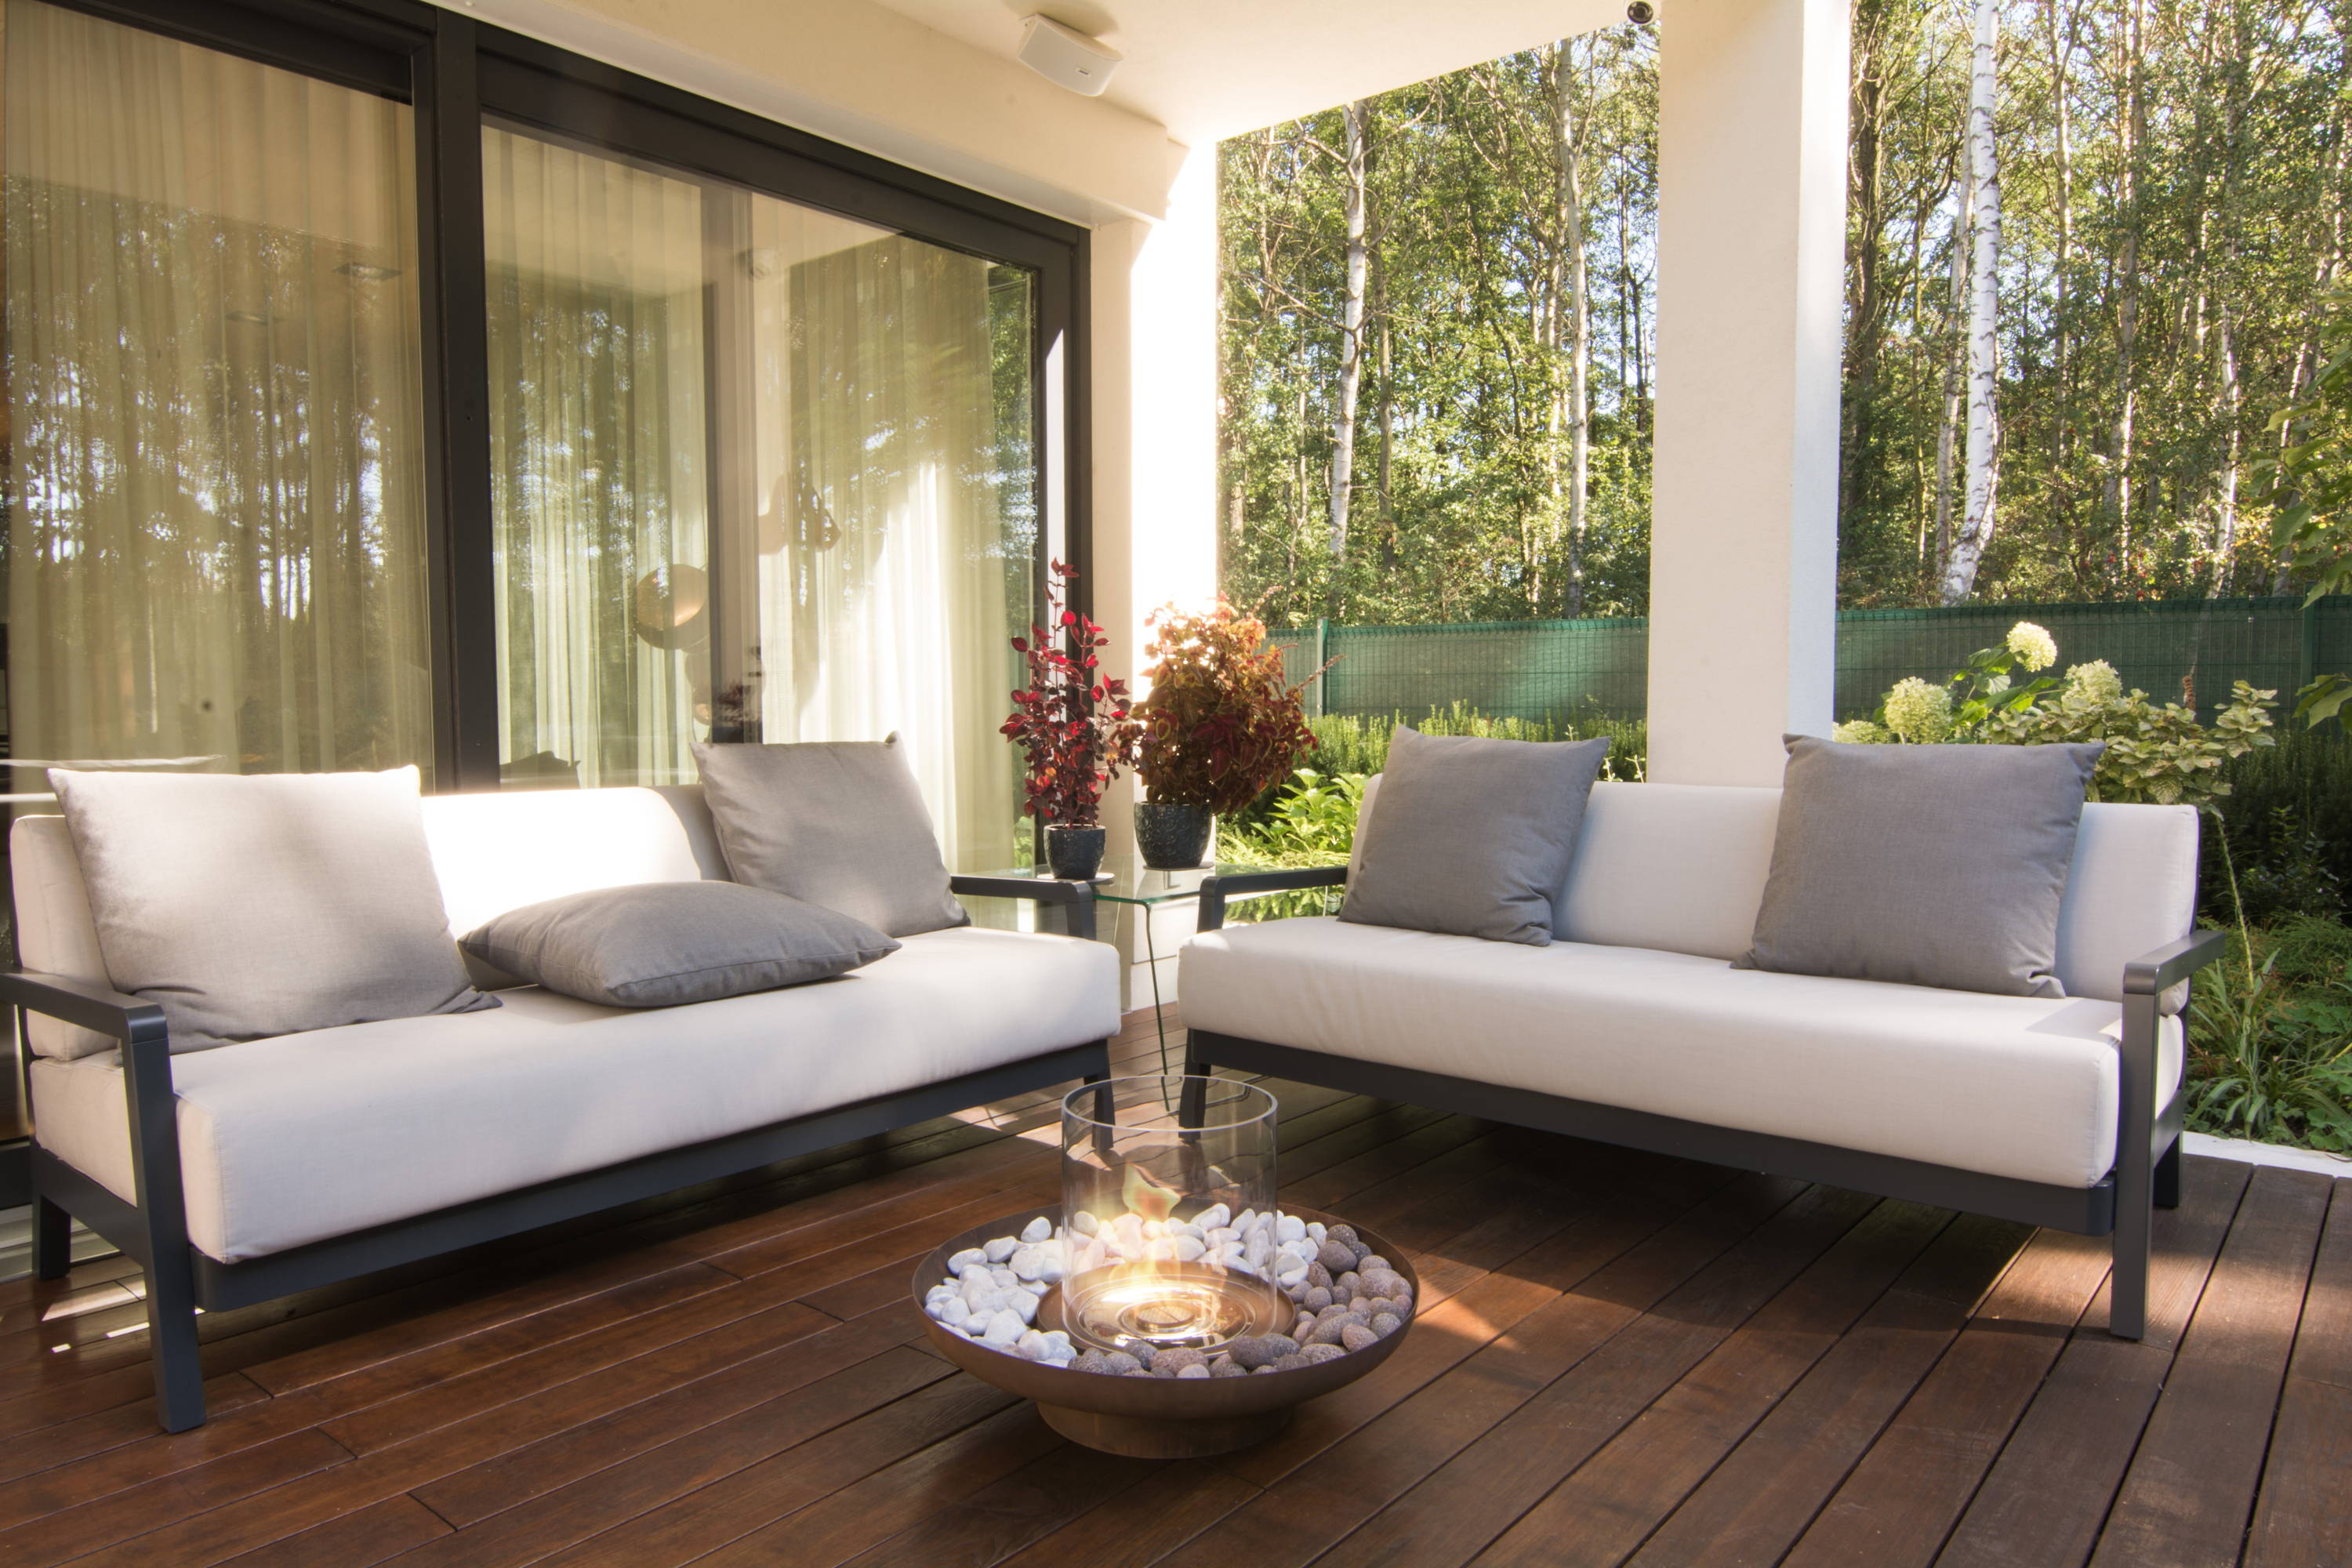 Outdoor Ethanol Fireplaces The Modern Fire Pit